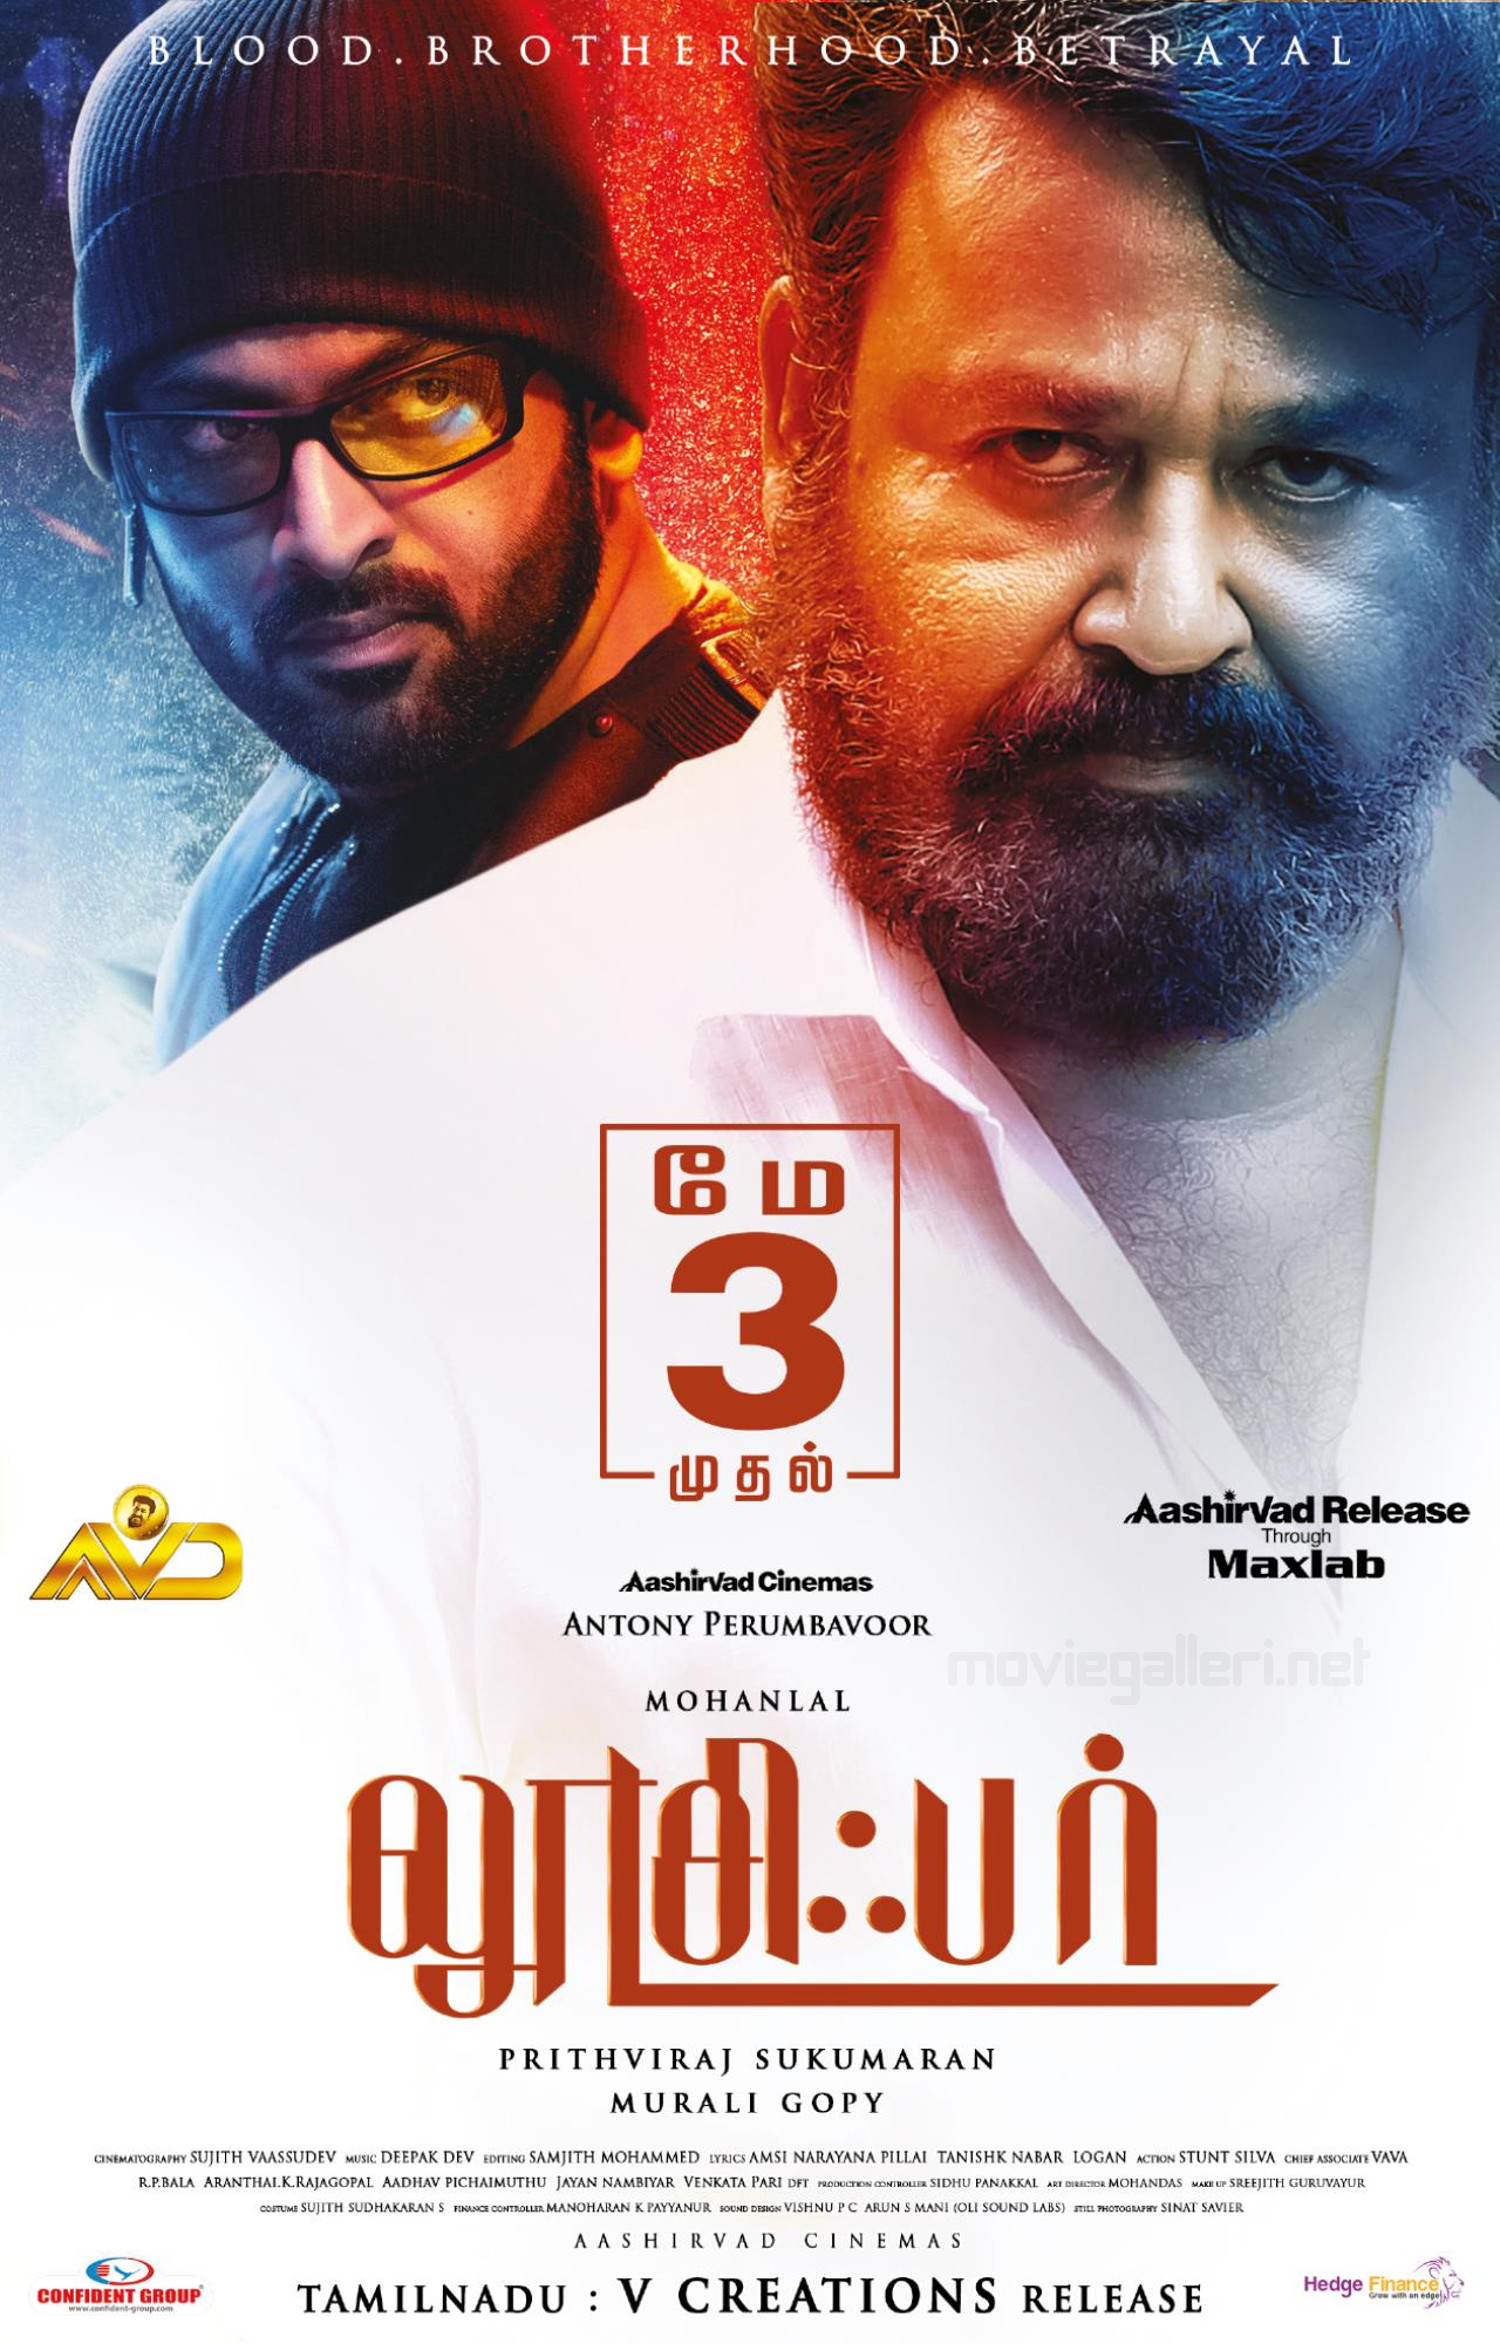 Prithviraj Sukumaran Mohanlal Lucifer Tamil Movie Release Date May 3rd Poster HD